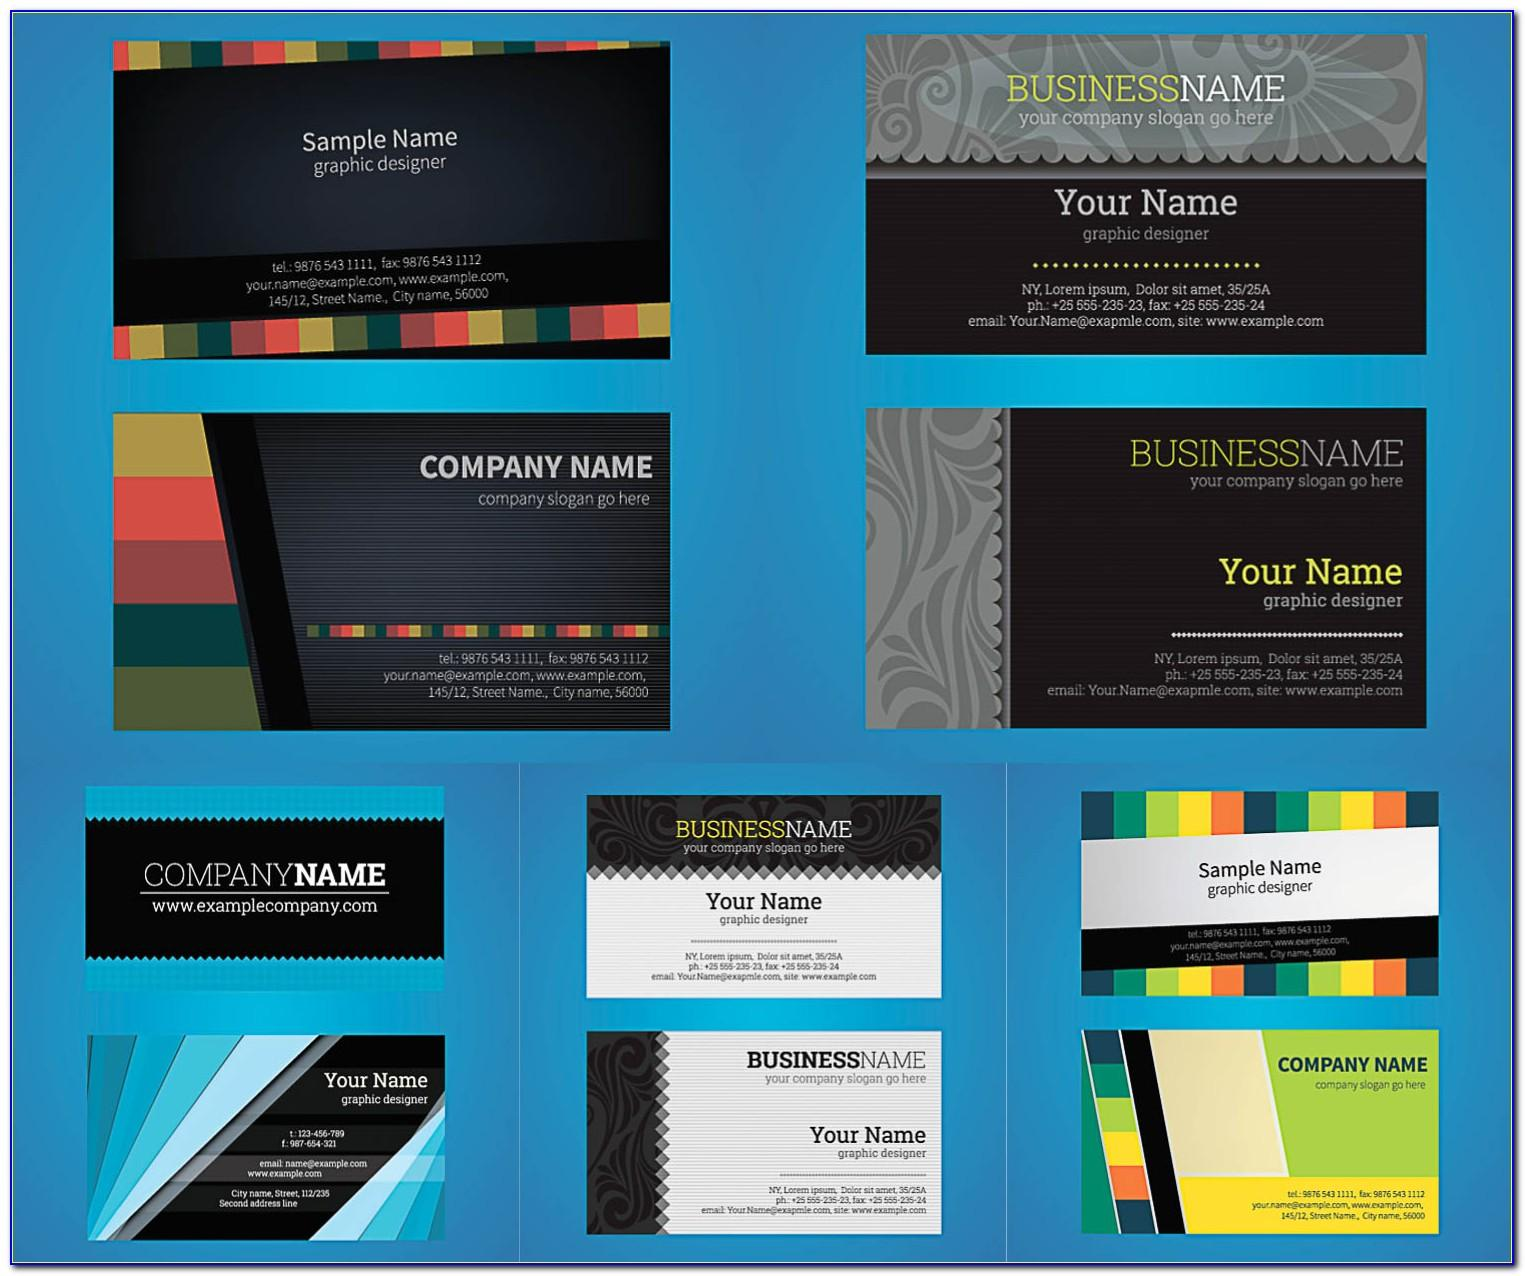 Business Card Ai Template Free Download